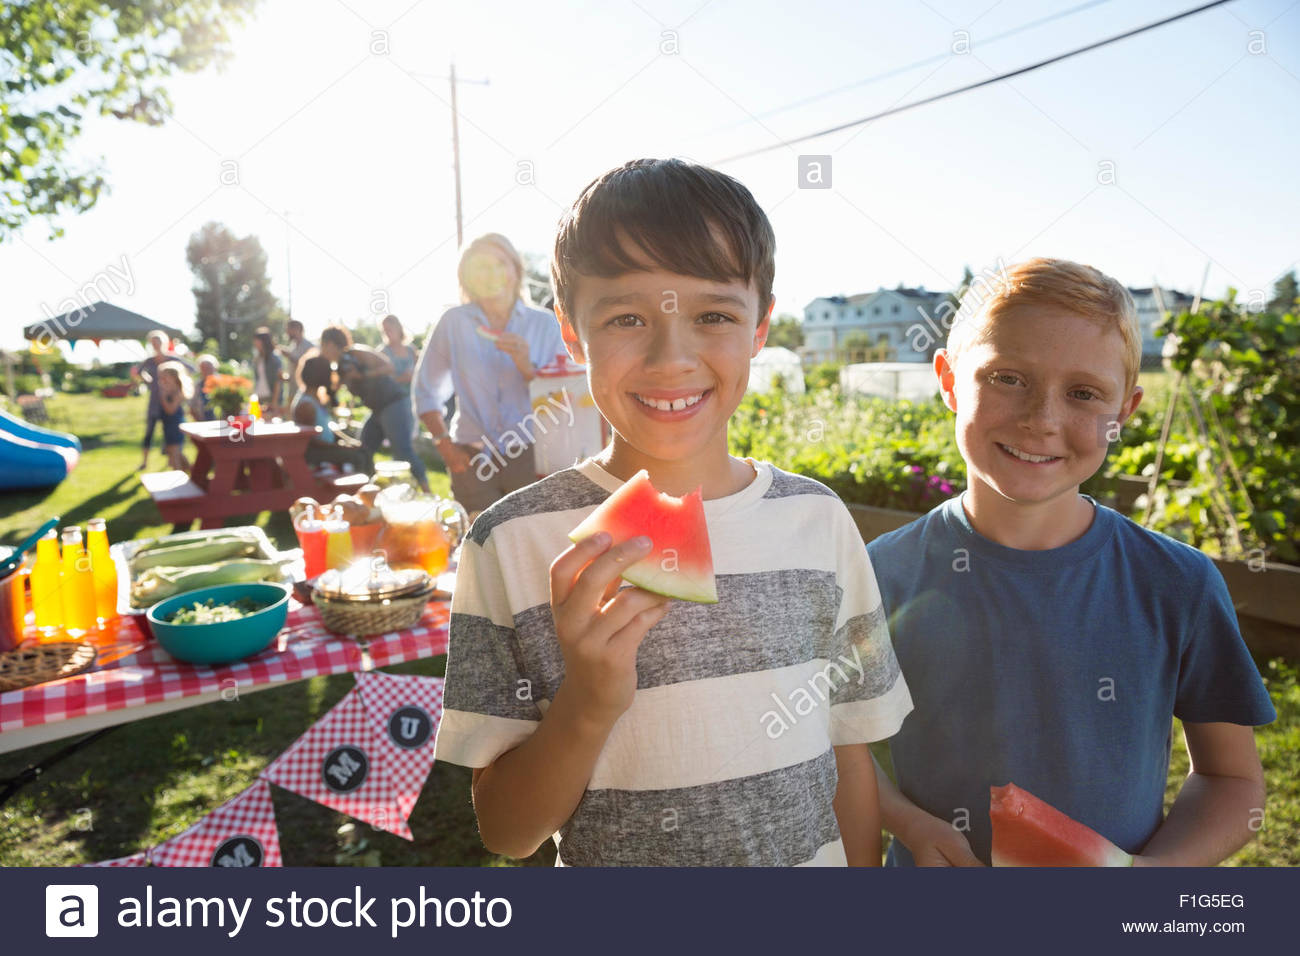 Portrait smiling boys eating watermelon sunny park party - Stock Image